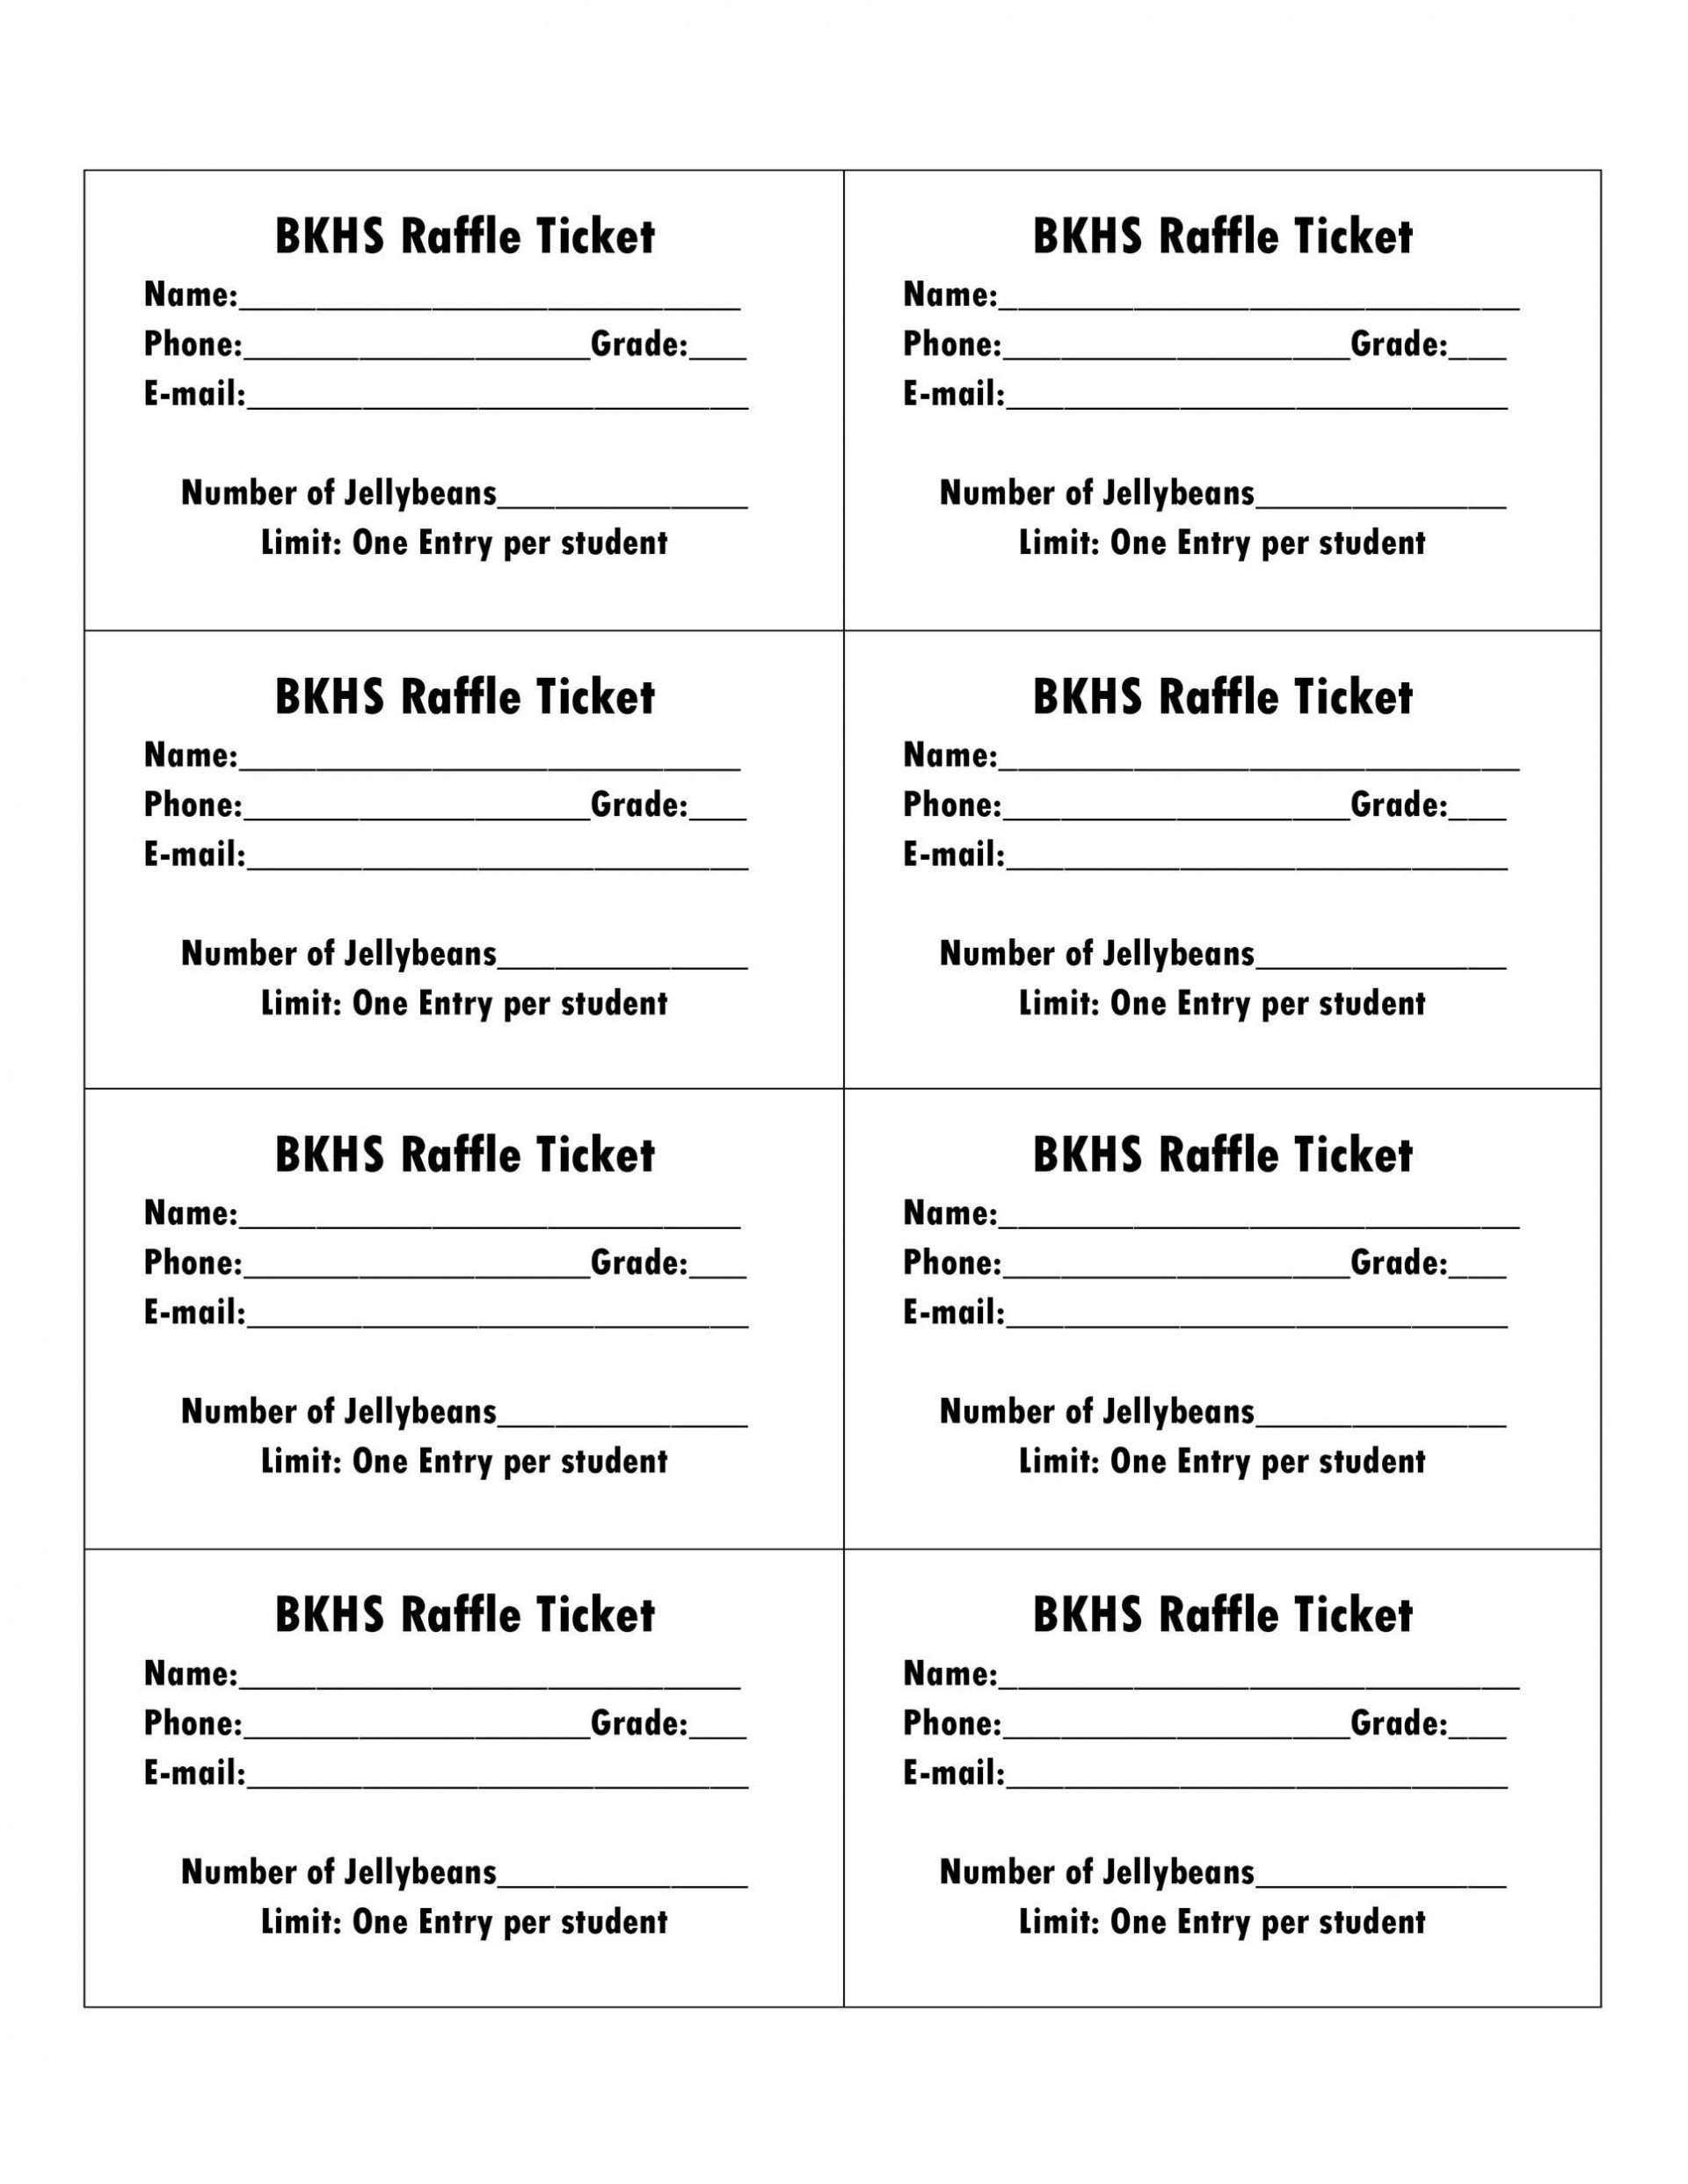 006 Amazing Microsoft Word Raffle Ticket Template Highest Clarity  2007 2010 8 Per Page1920